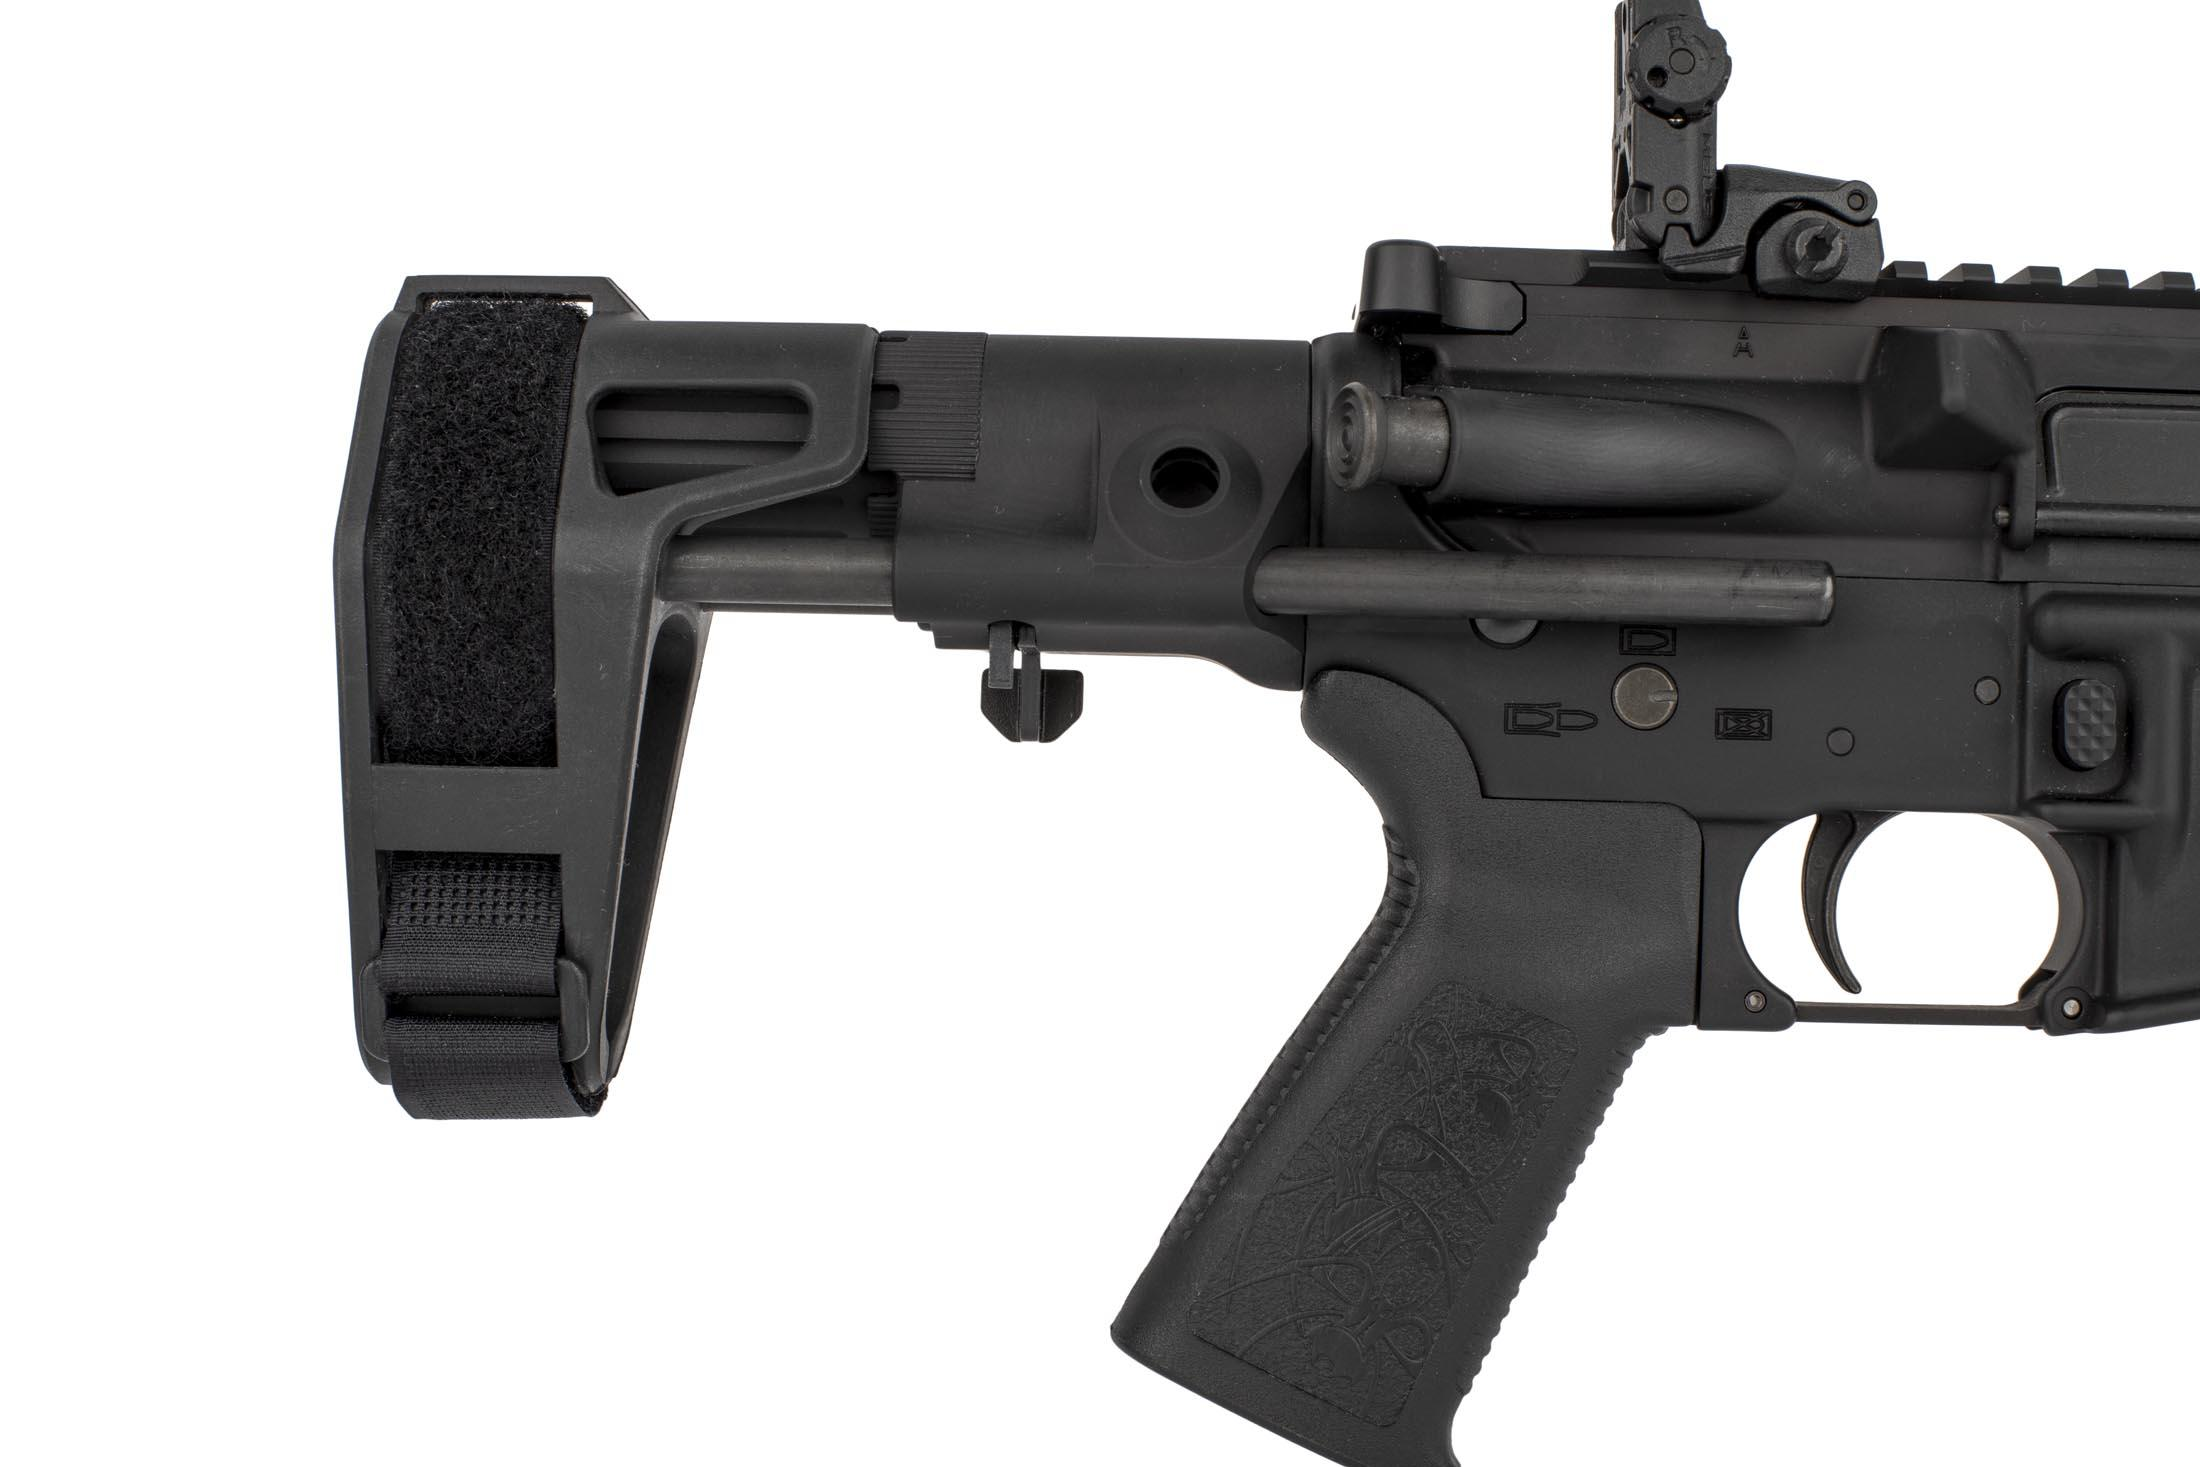 Spikes Quad Rail 81in AR15 Pistol In 556 NATO Is Equipped With A Maxim Defense